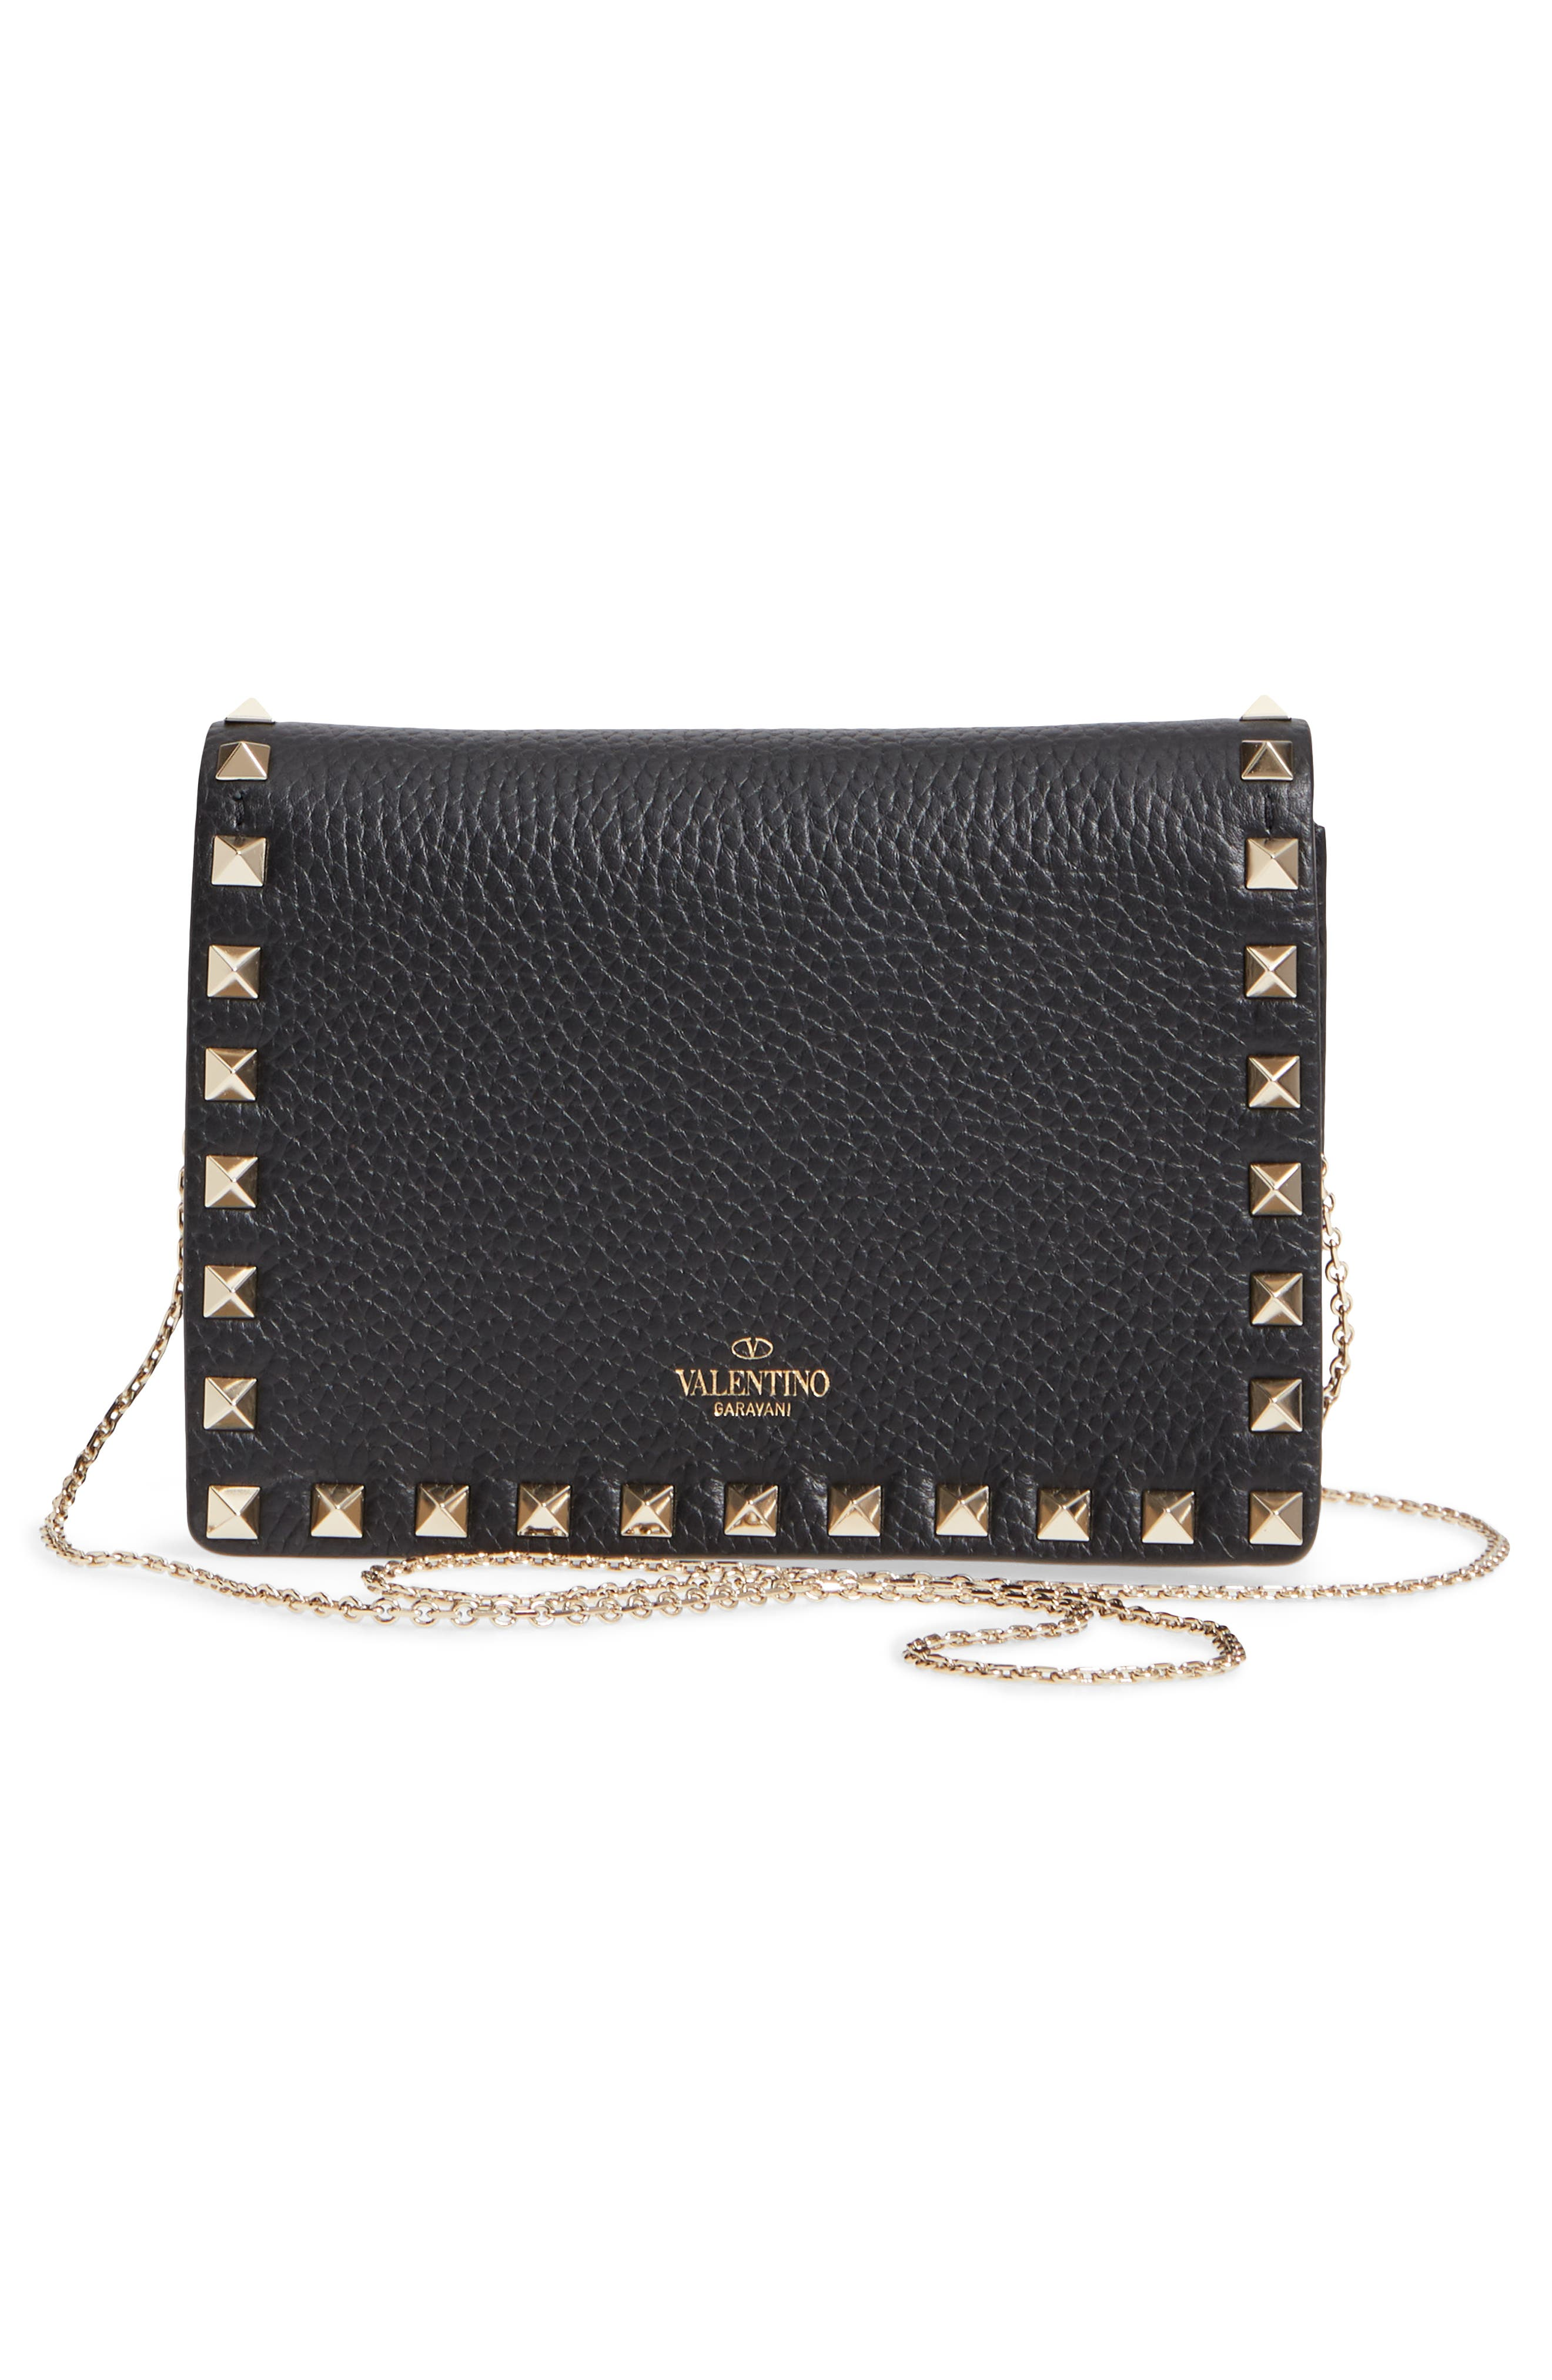 VALENTINO GARAVANI, Rockstud Leather Pouch Wallet on a Chain, Alternate thumbnail 3, color, NERO/ GOLD